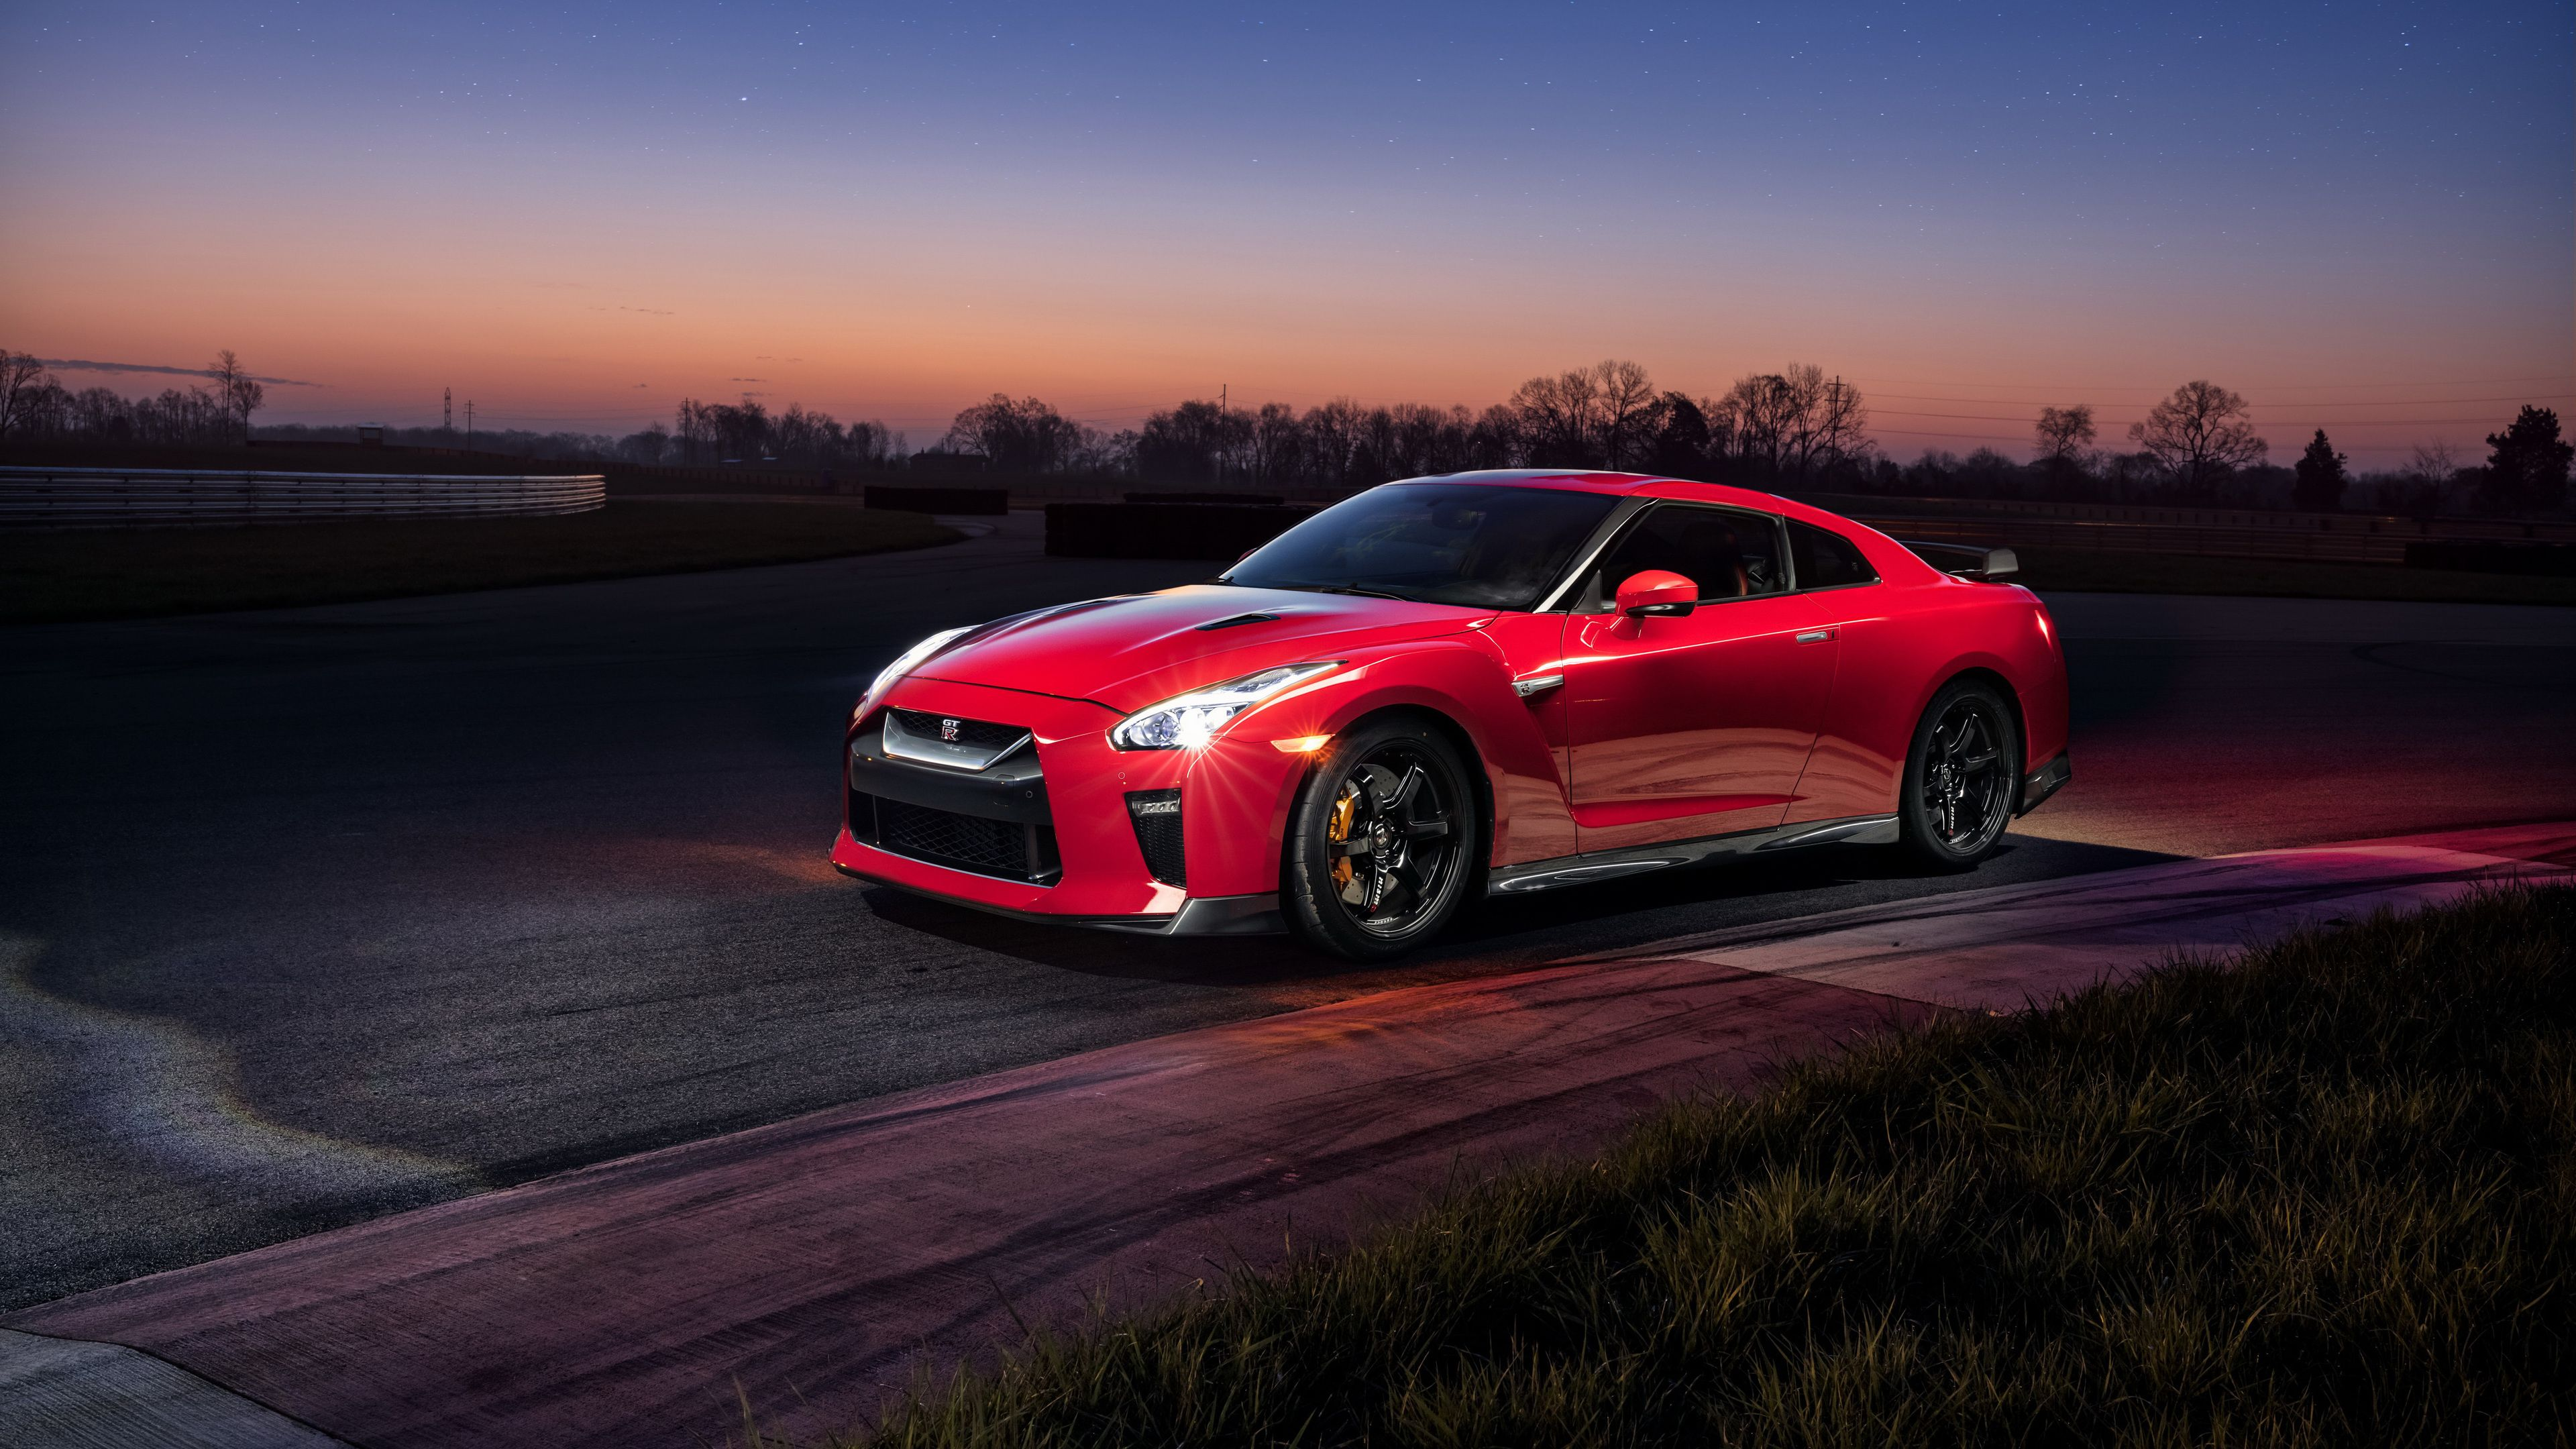 2017 Nissan Gtr Track Edition Nissan Wallpapers Nissan Gtr Wallpapers Hd Wallpapers Cars Wallpapers 4k Wallpapers 2017 Cars Wal Nissan Gtr Gtr Nissan Gt R